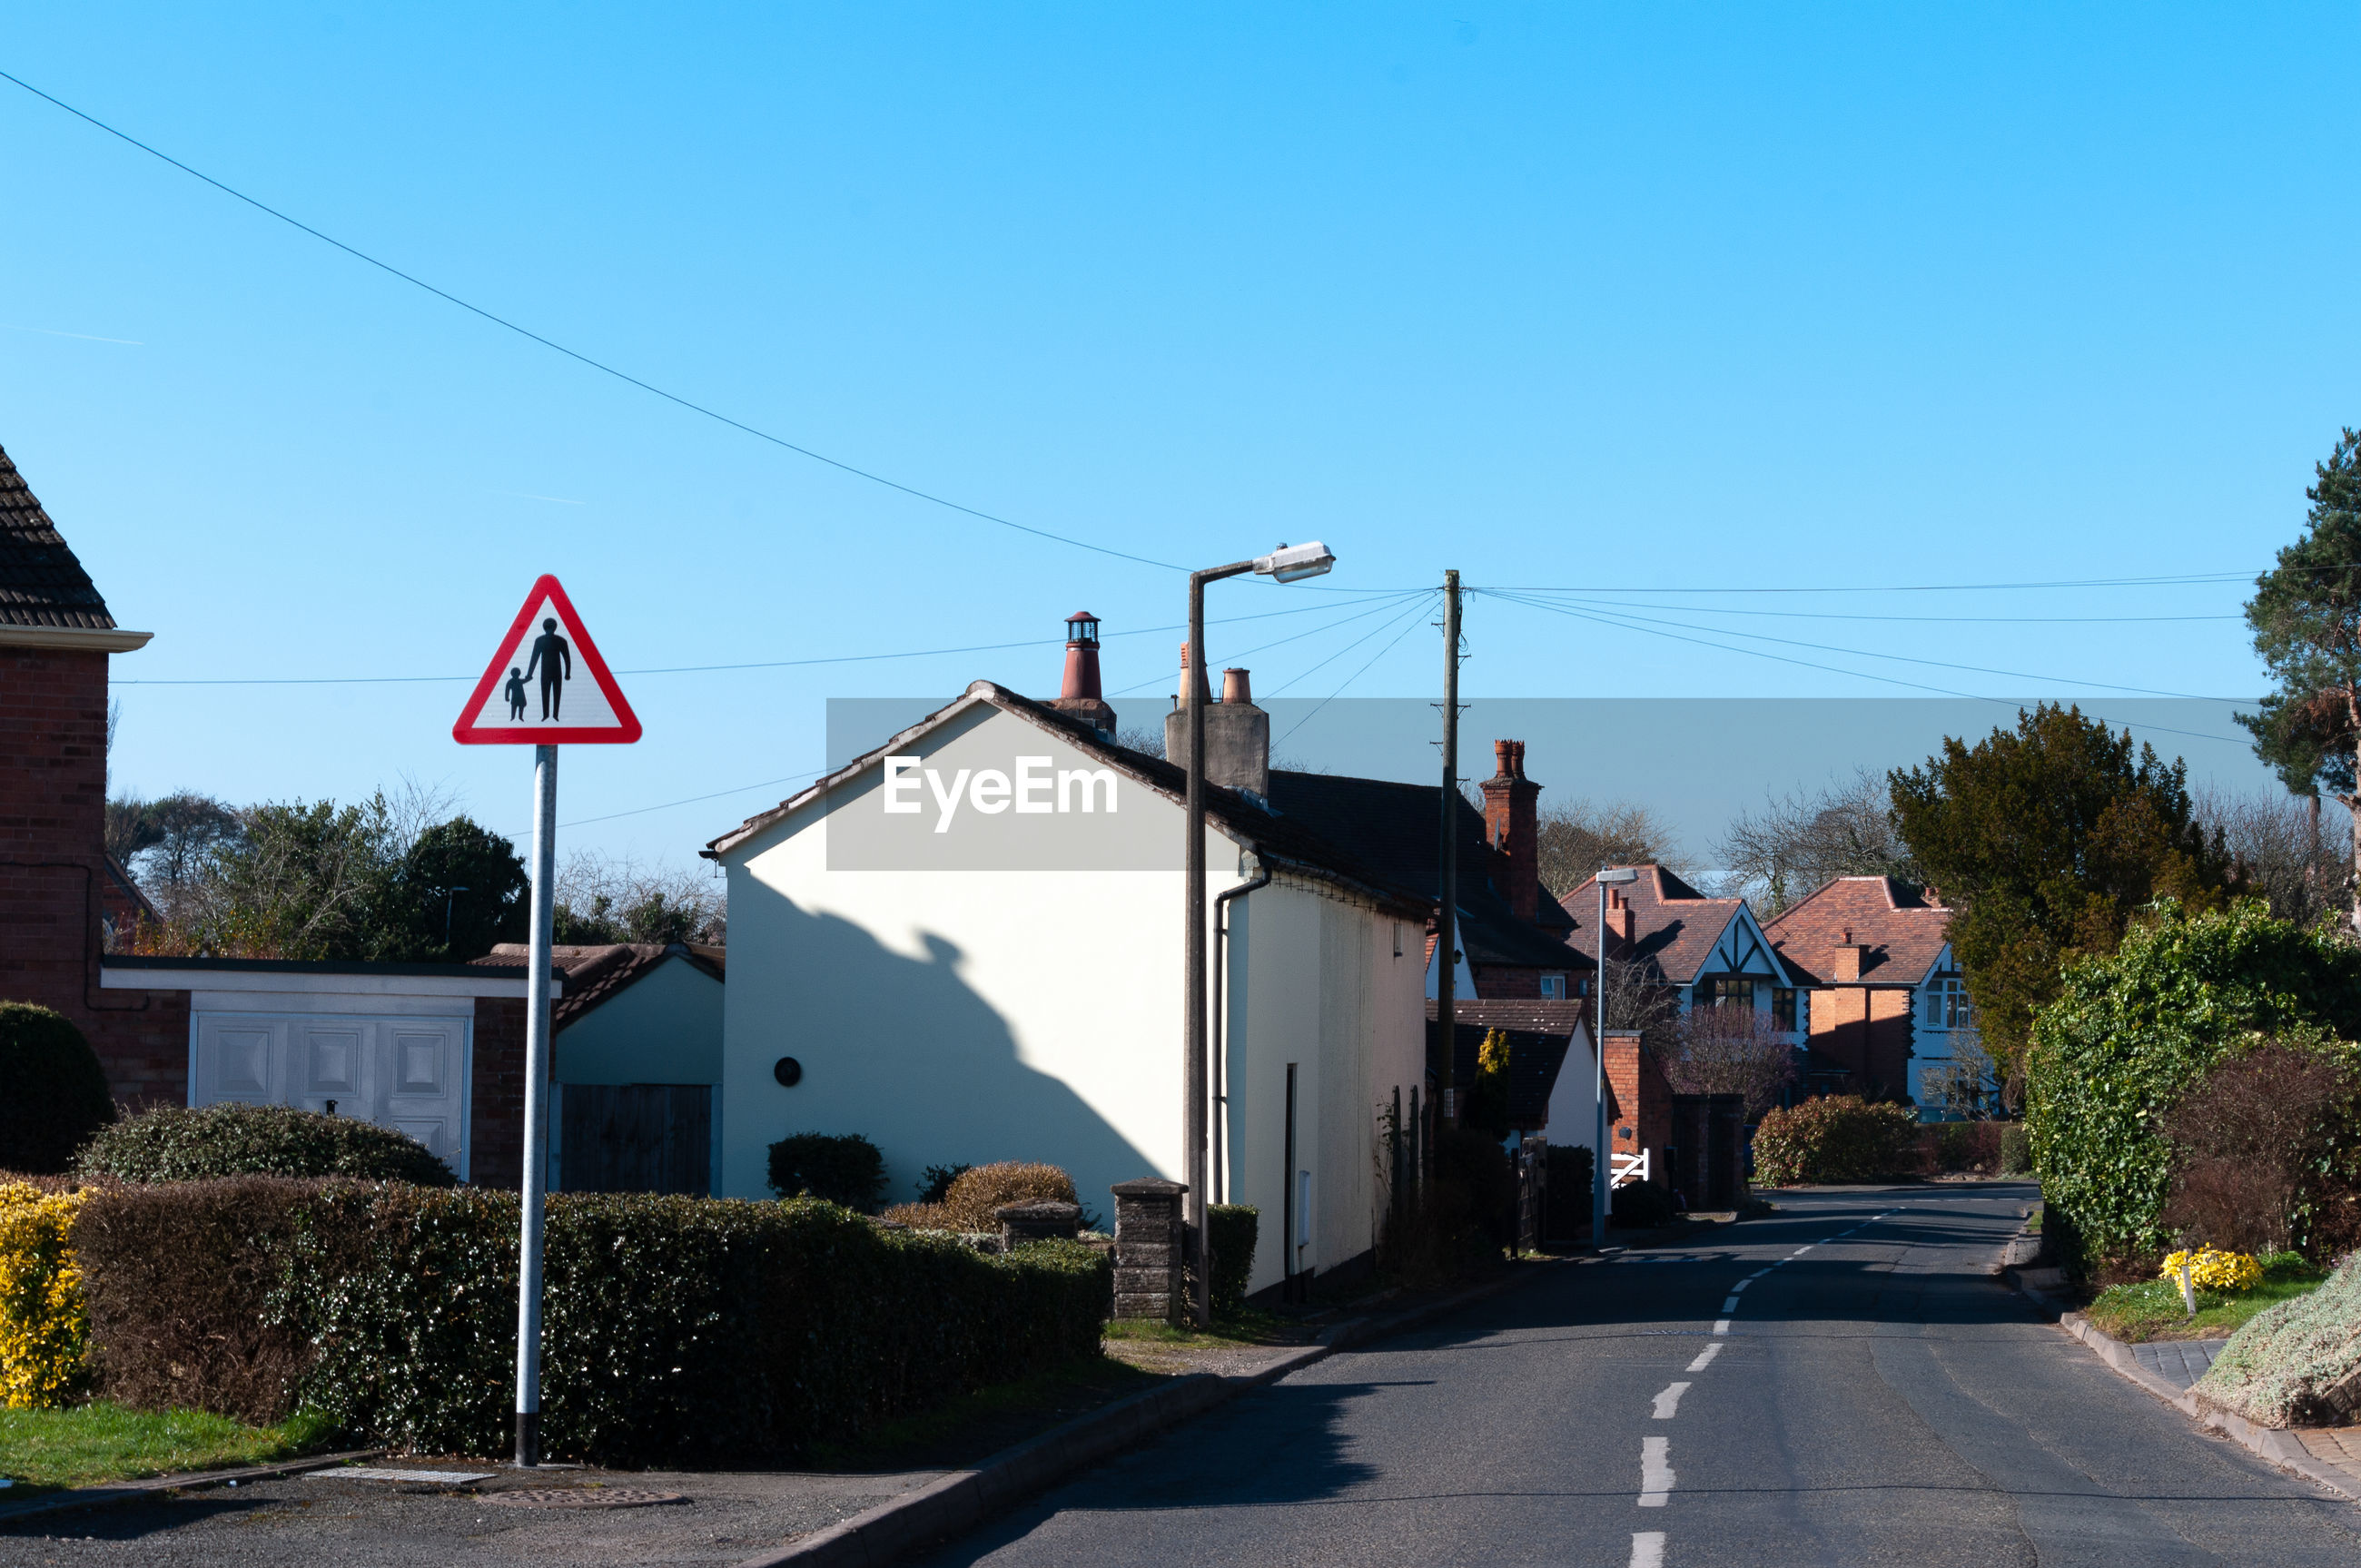 ROAD AMIDST HOUSES AGAINST CLEAR BLUE SKY